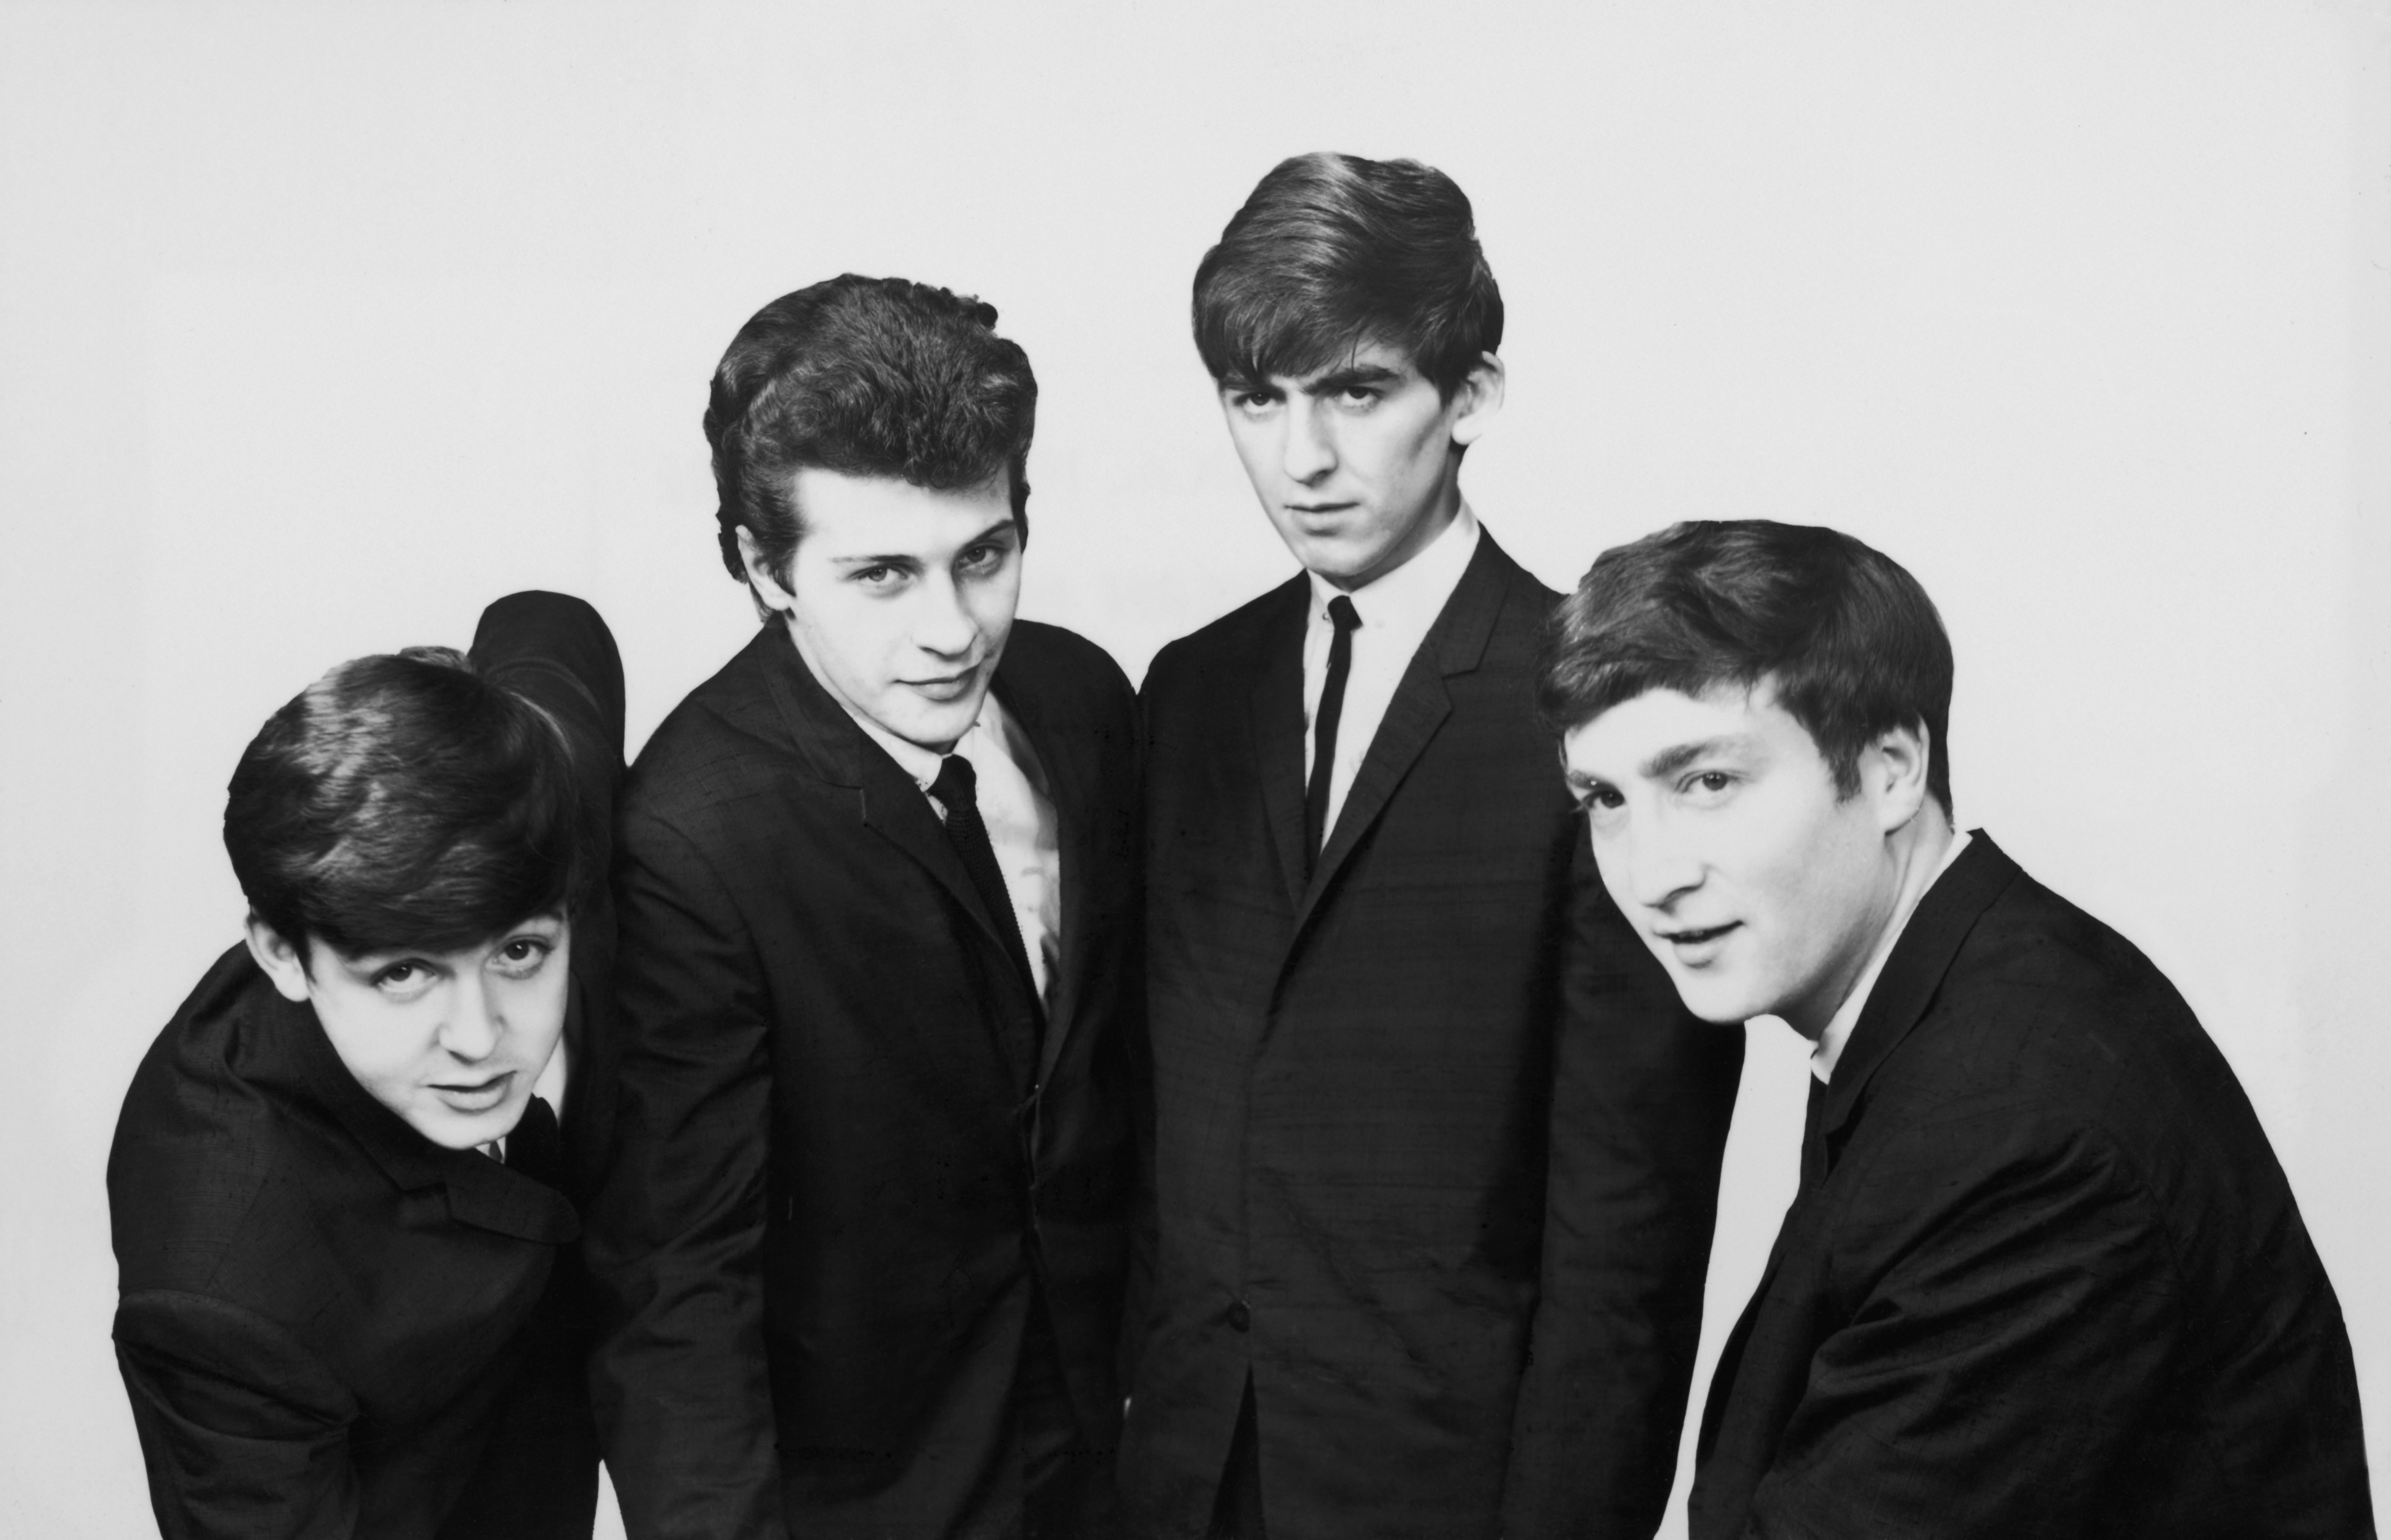 An early portrait of The Beatles.